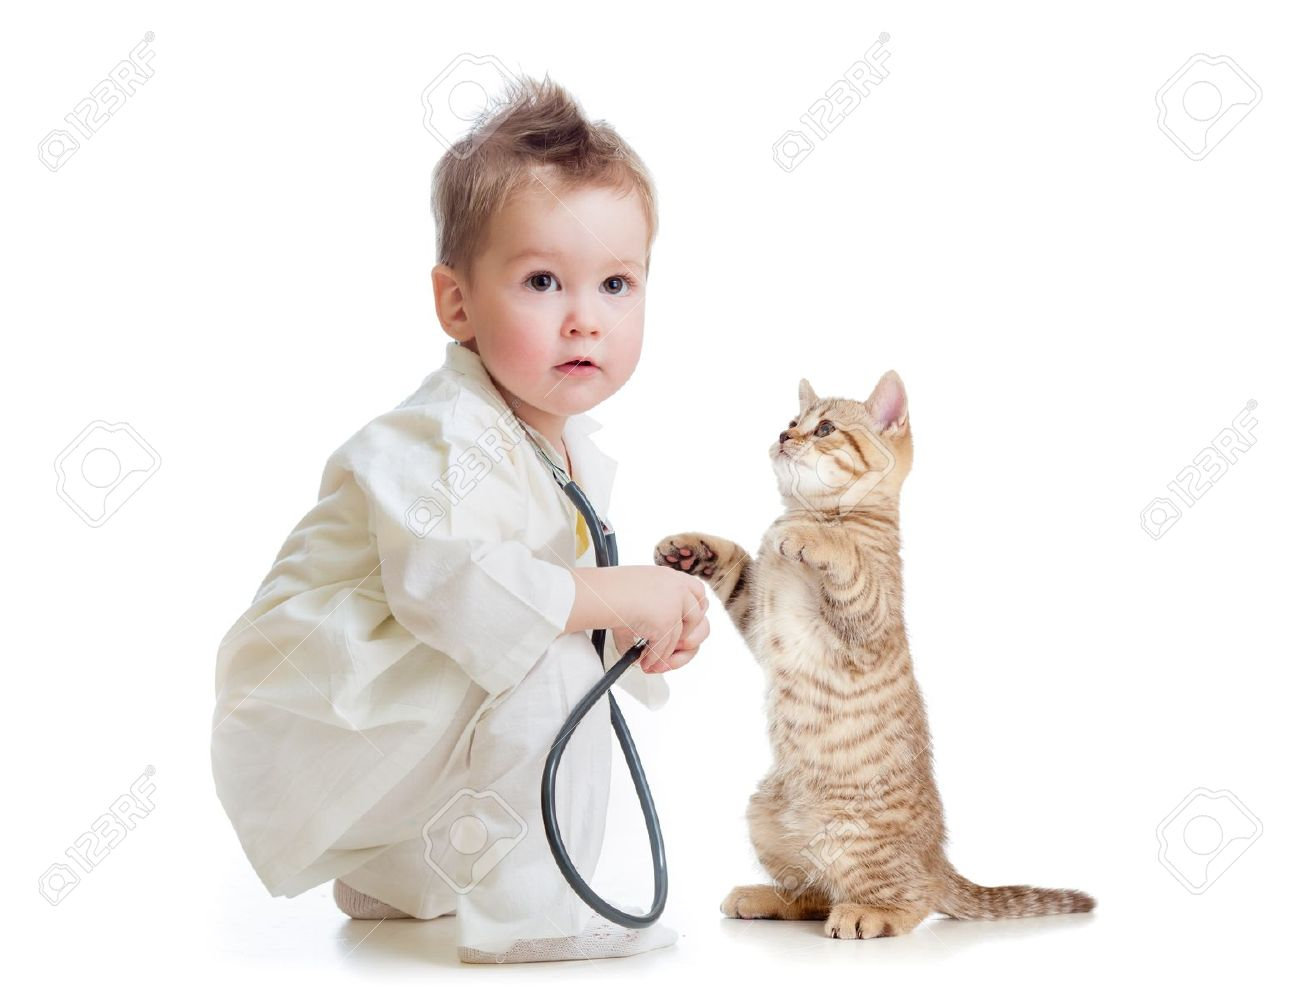 doctor kid kid or child playing doctor with stethoscope and cat isolated on white  Stock Photo - 16300897